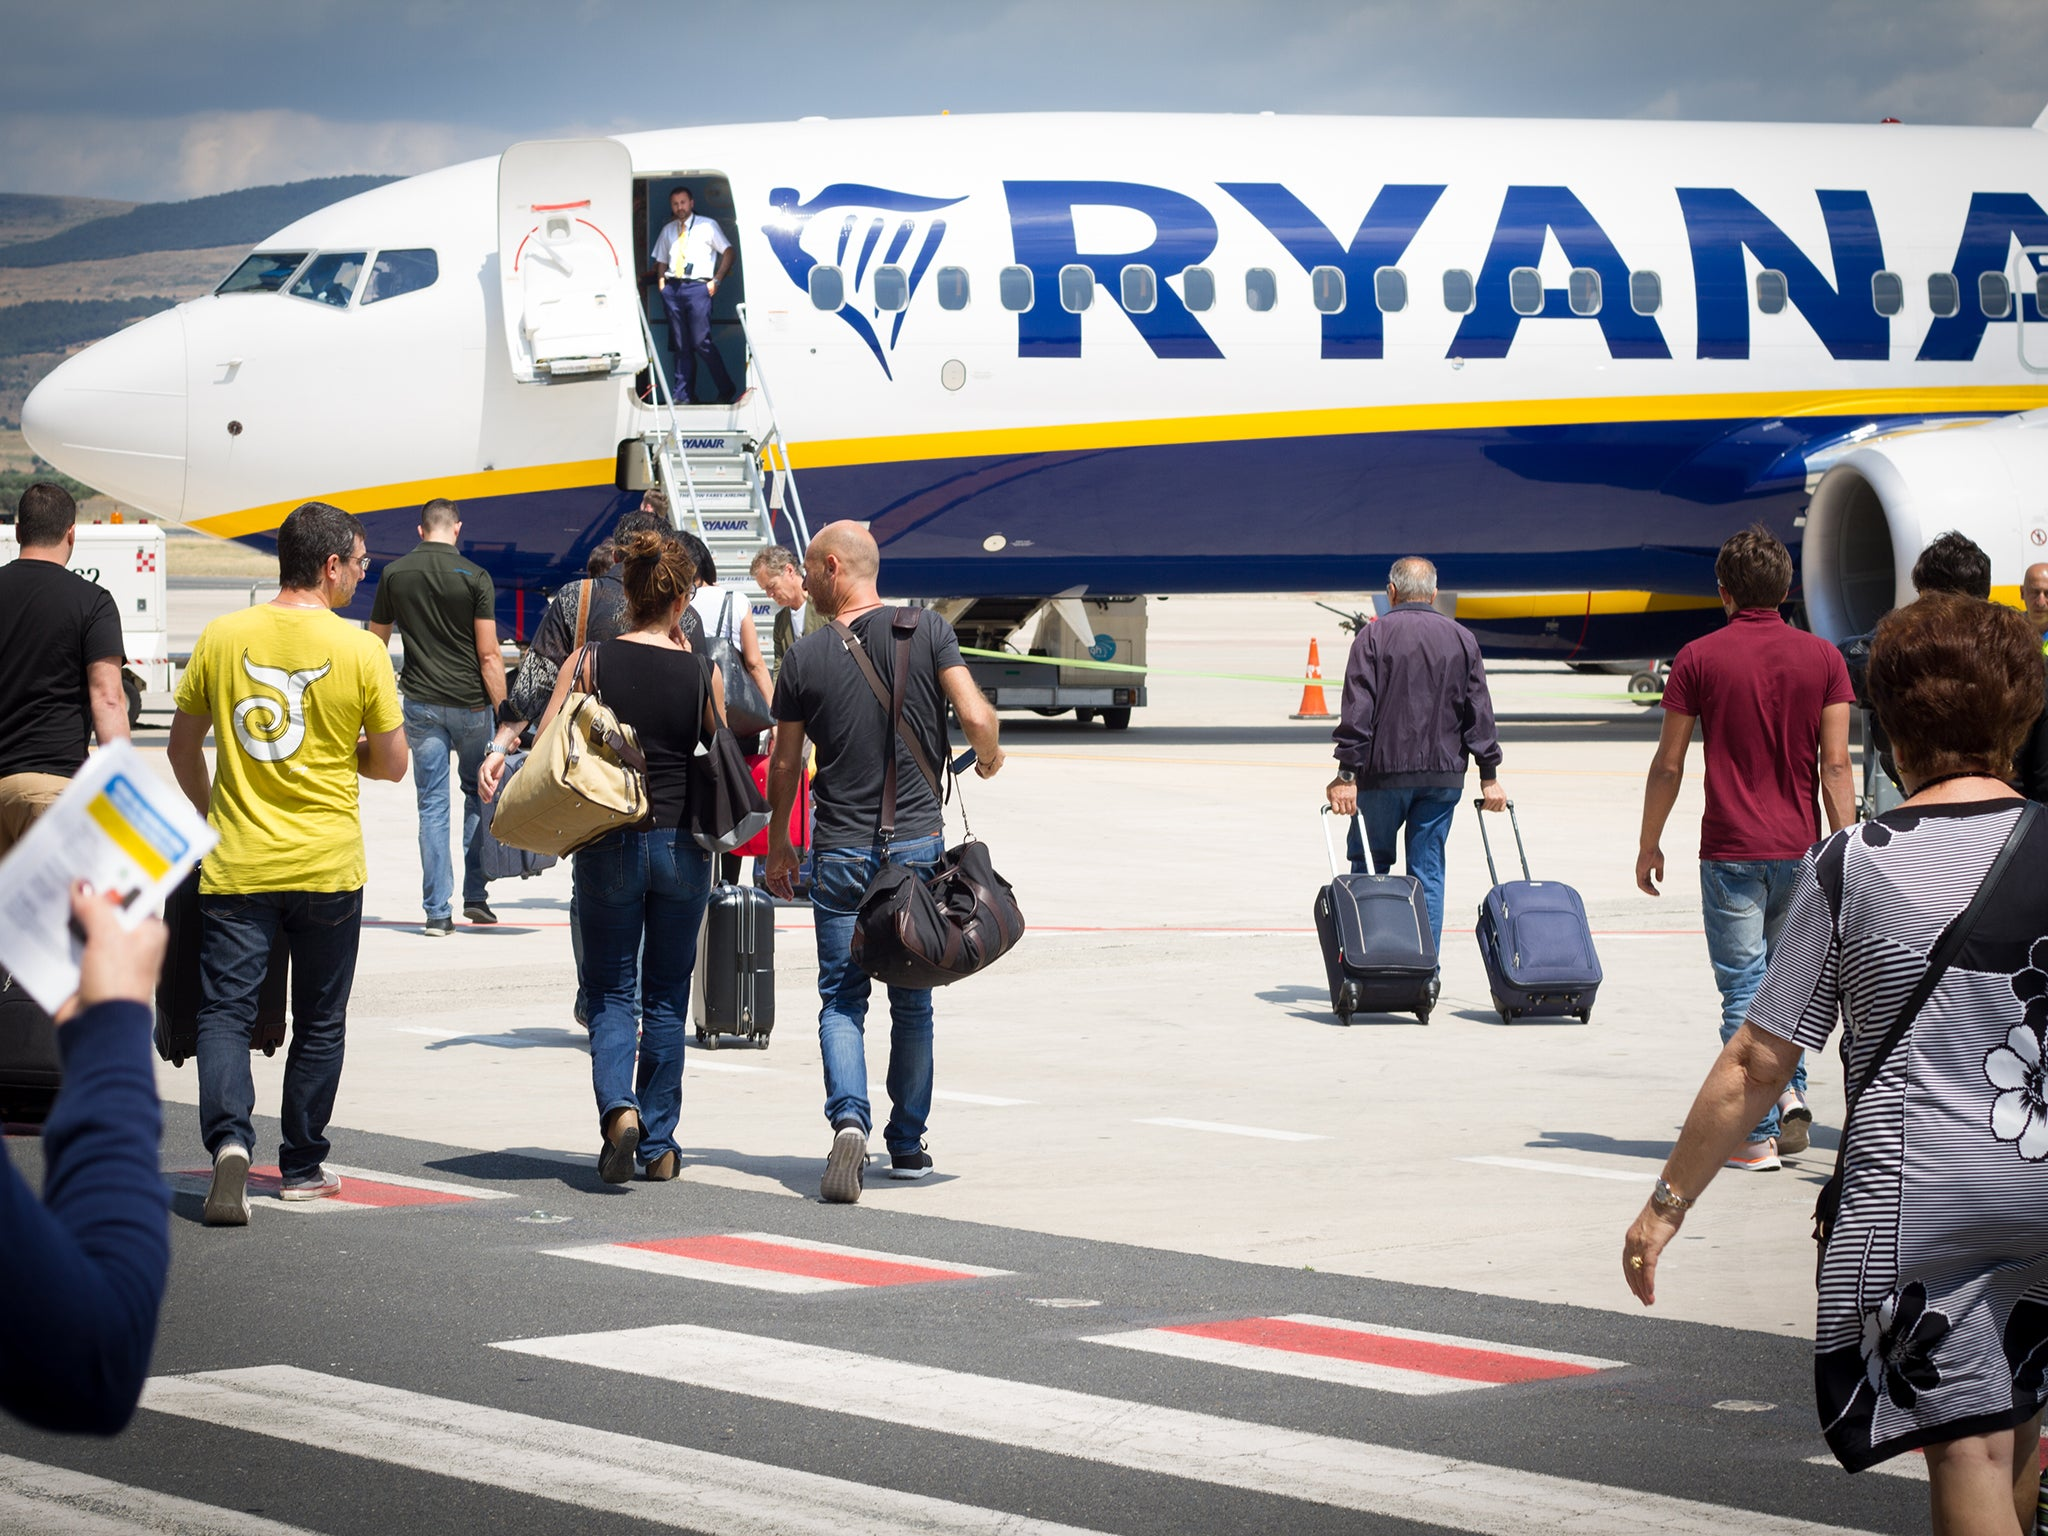 Ryanair will keep flying through Brexit until 2021, says airline executive